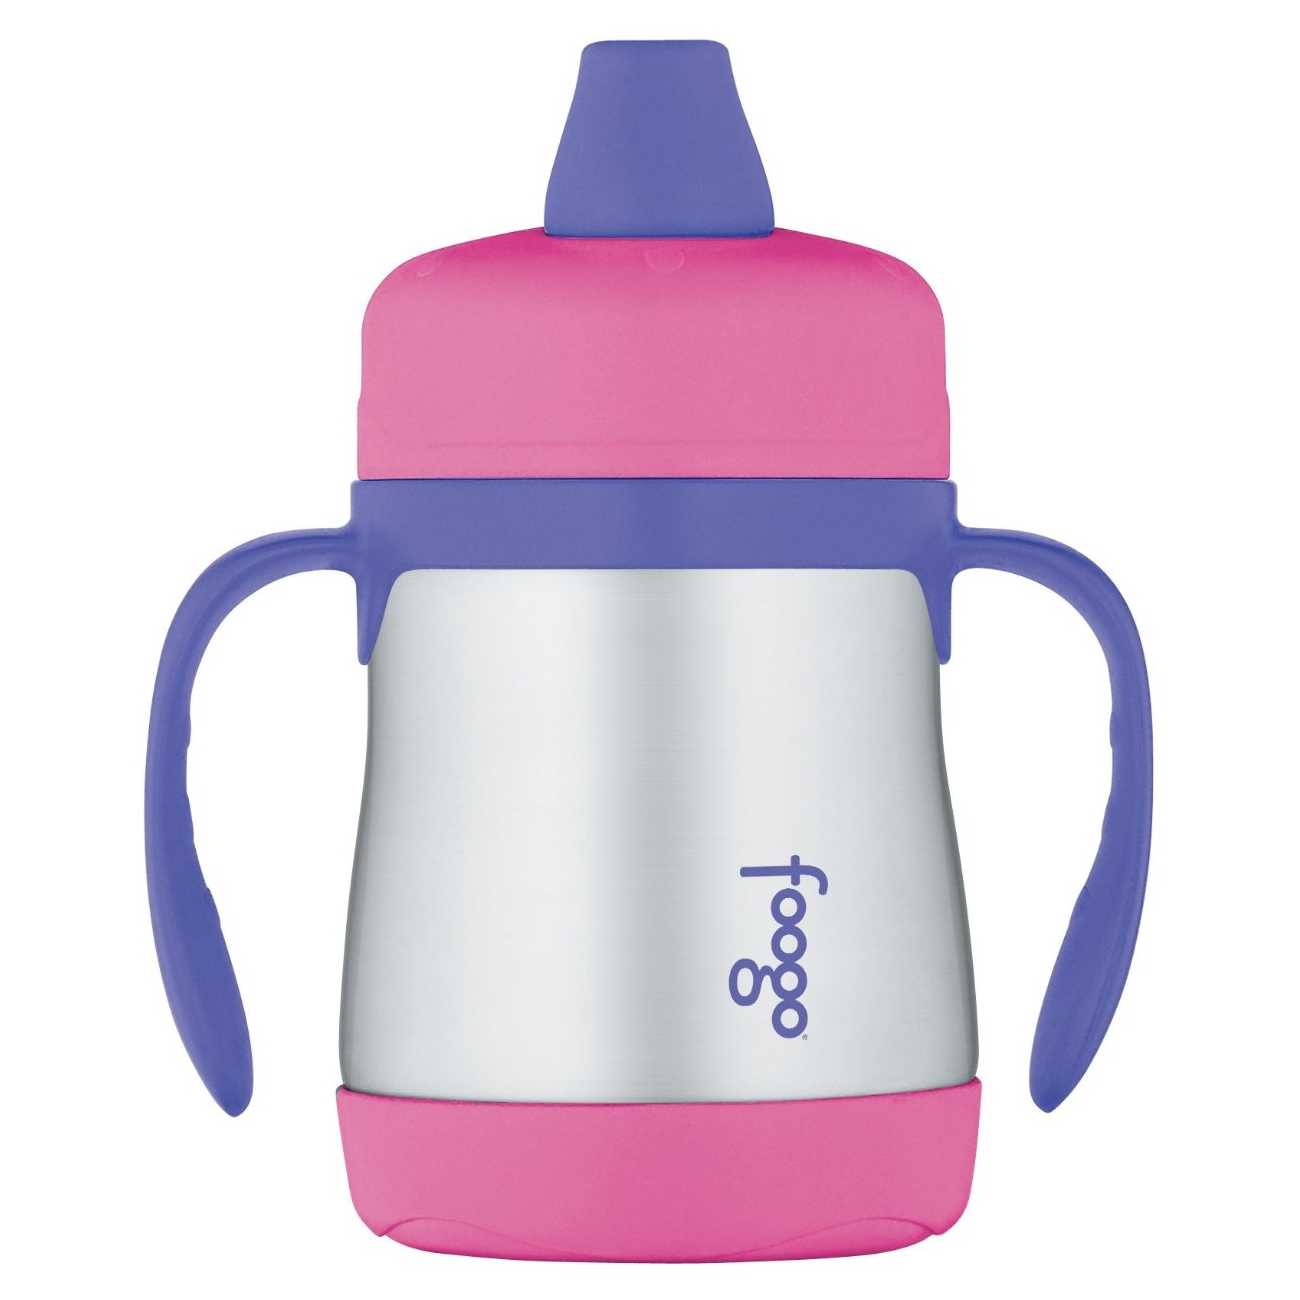 Thermos Foogo Pink with Purple Accents Stainless Steel Vacuum Insulated Soft Spout 7 Ounce Sippy Cup with Handles